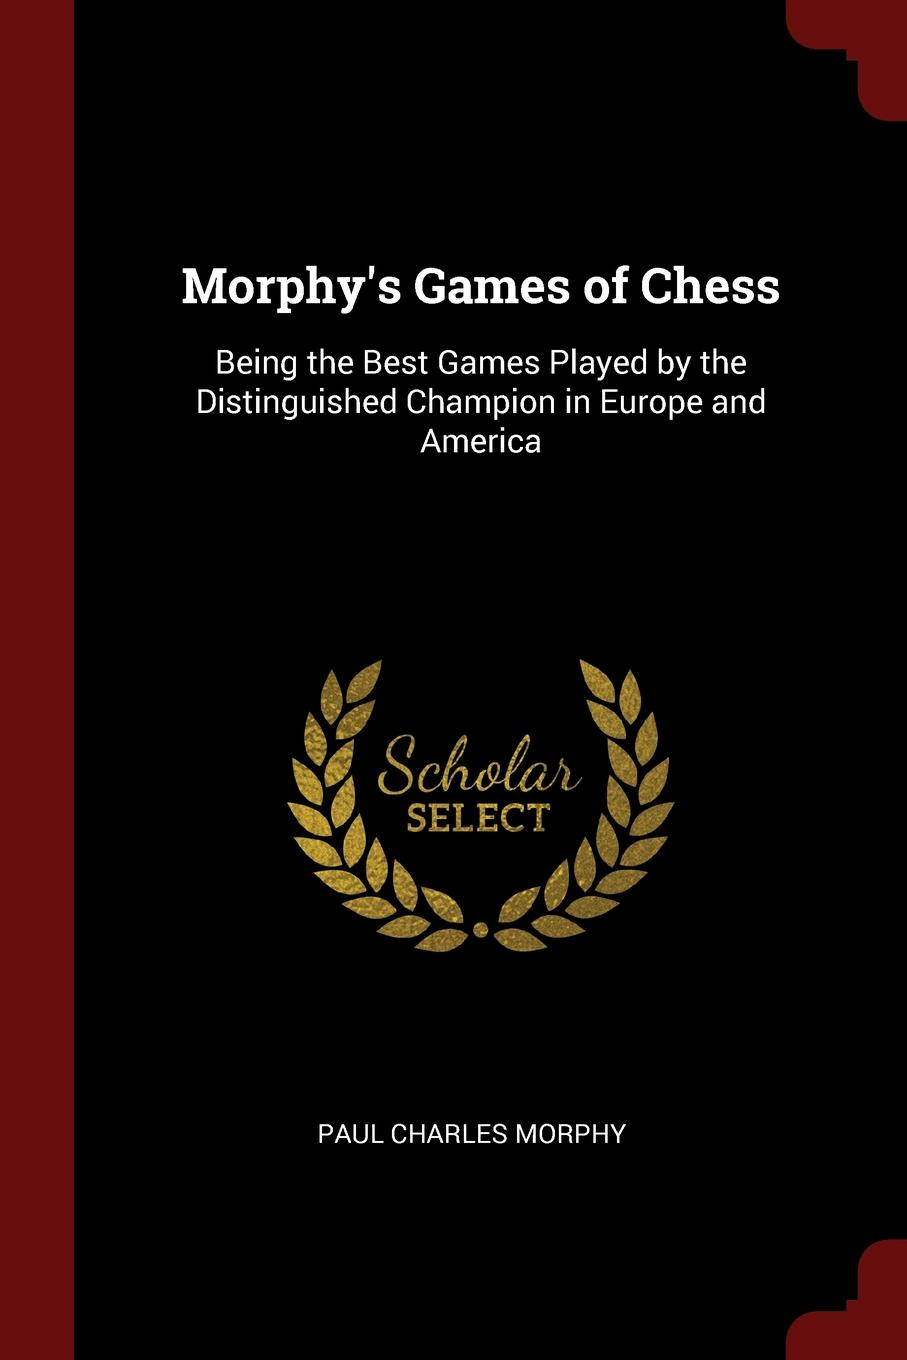 Paul Charles Morphy M Games of Chess. Being the Best Played by Distinguished Champion in Europe and America